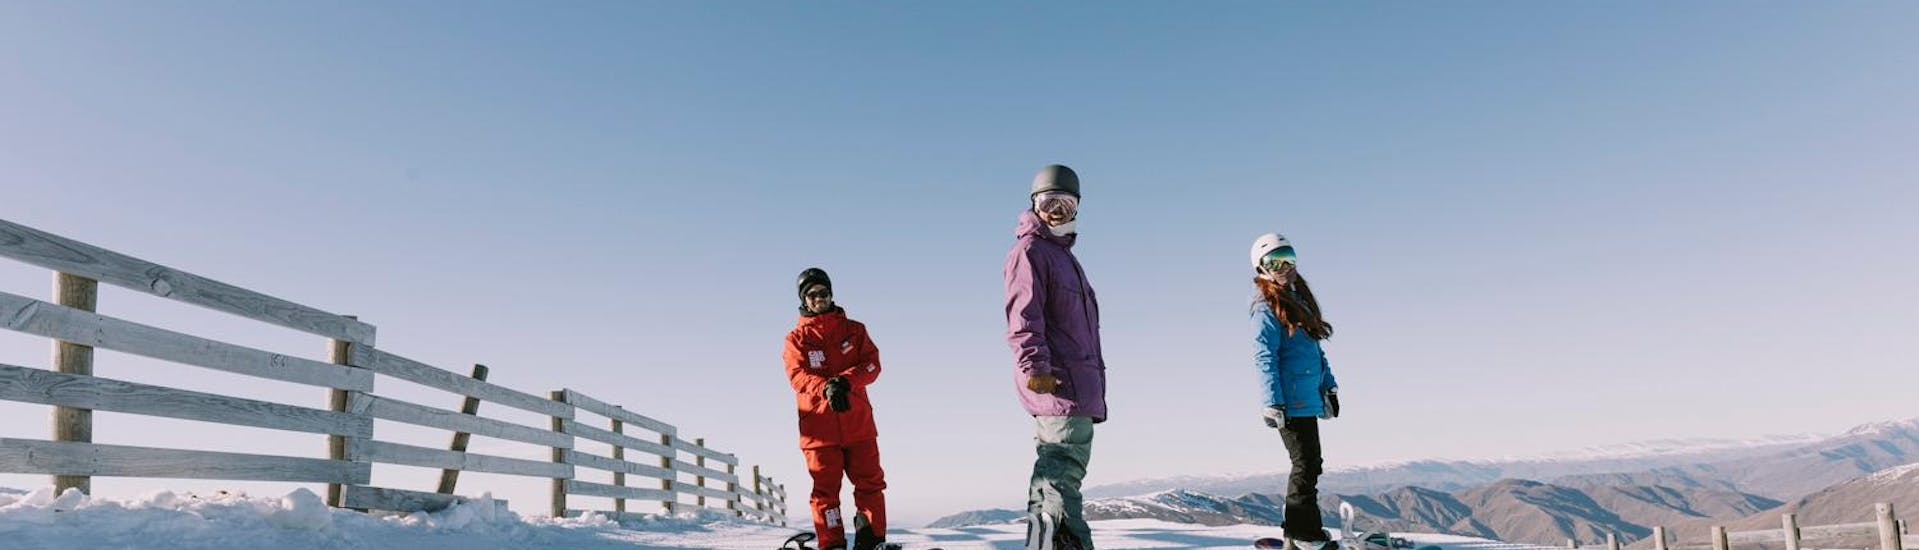 Snowboarding Lessons for Adults - All Levels - With Transfer